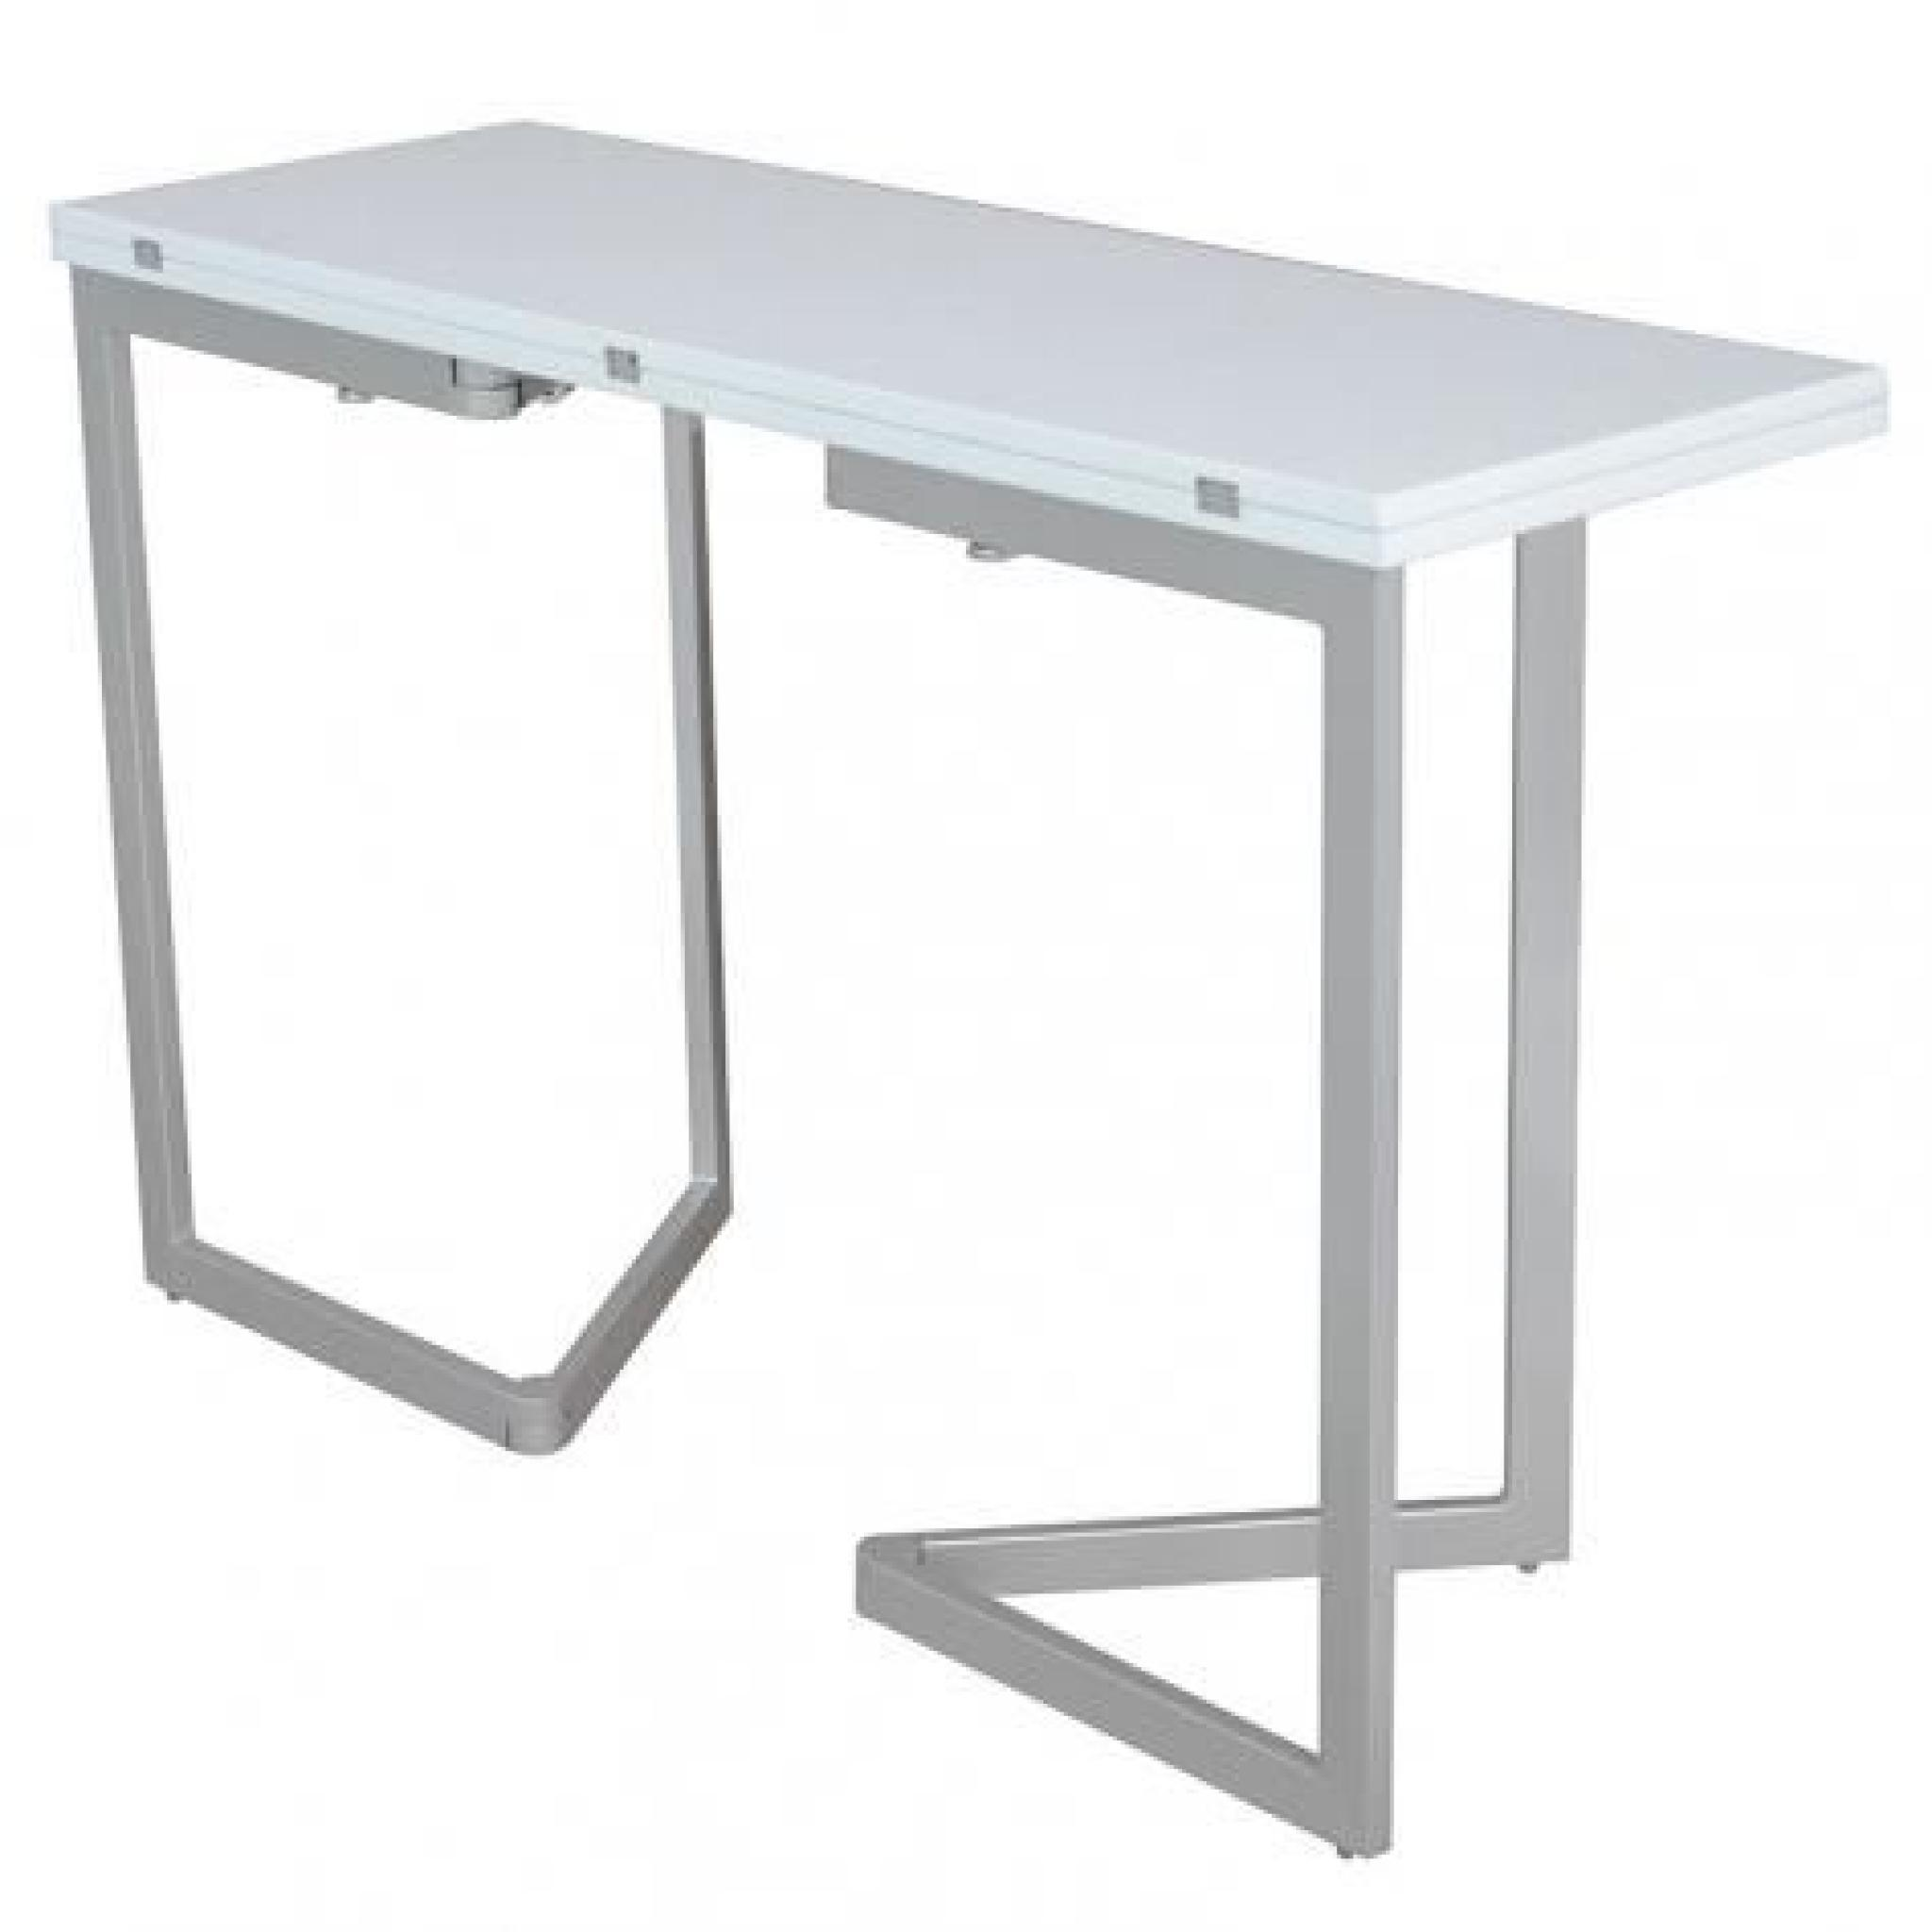 Table console extensible blanche laqu e talia achat for Table laquee blanche